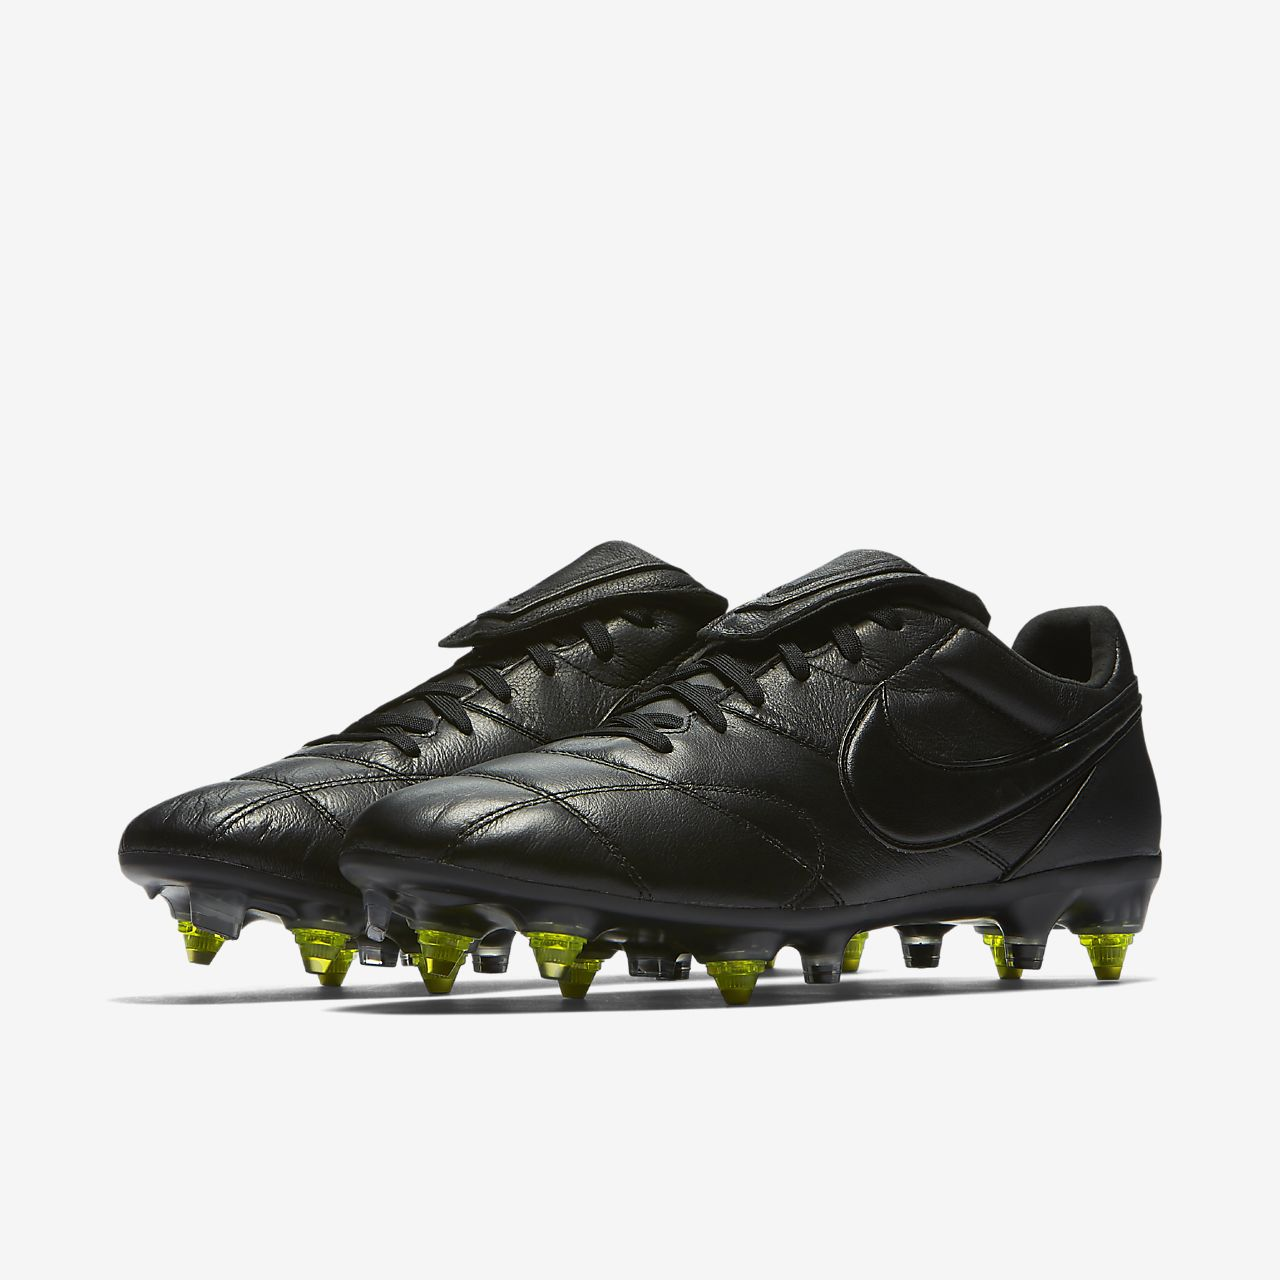 5b10e57b12b21 Nike Premier II Anti-Clog Traction SG-PRO Soft-Ground Football Boot ...